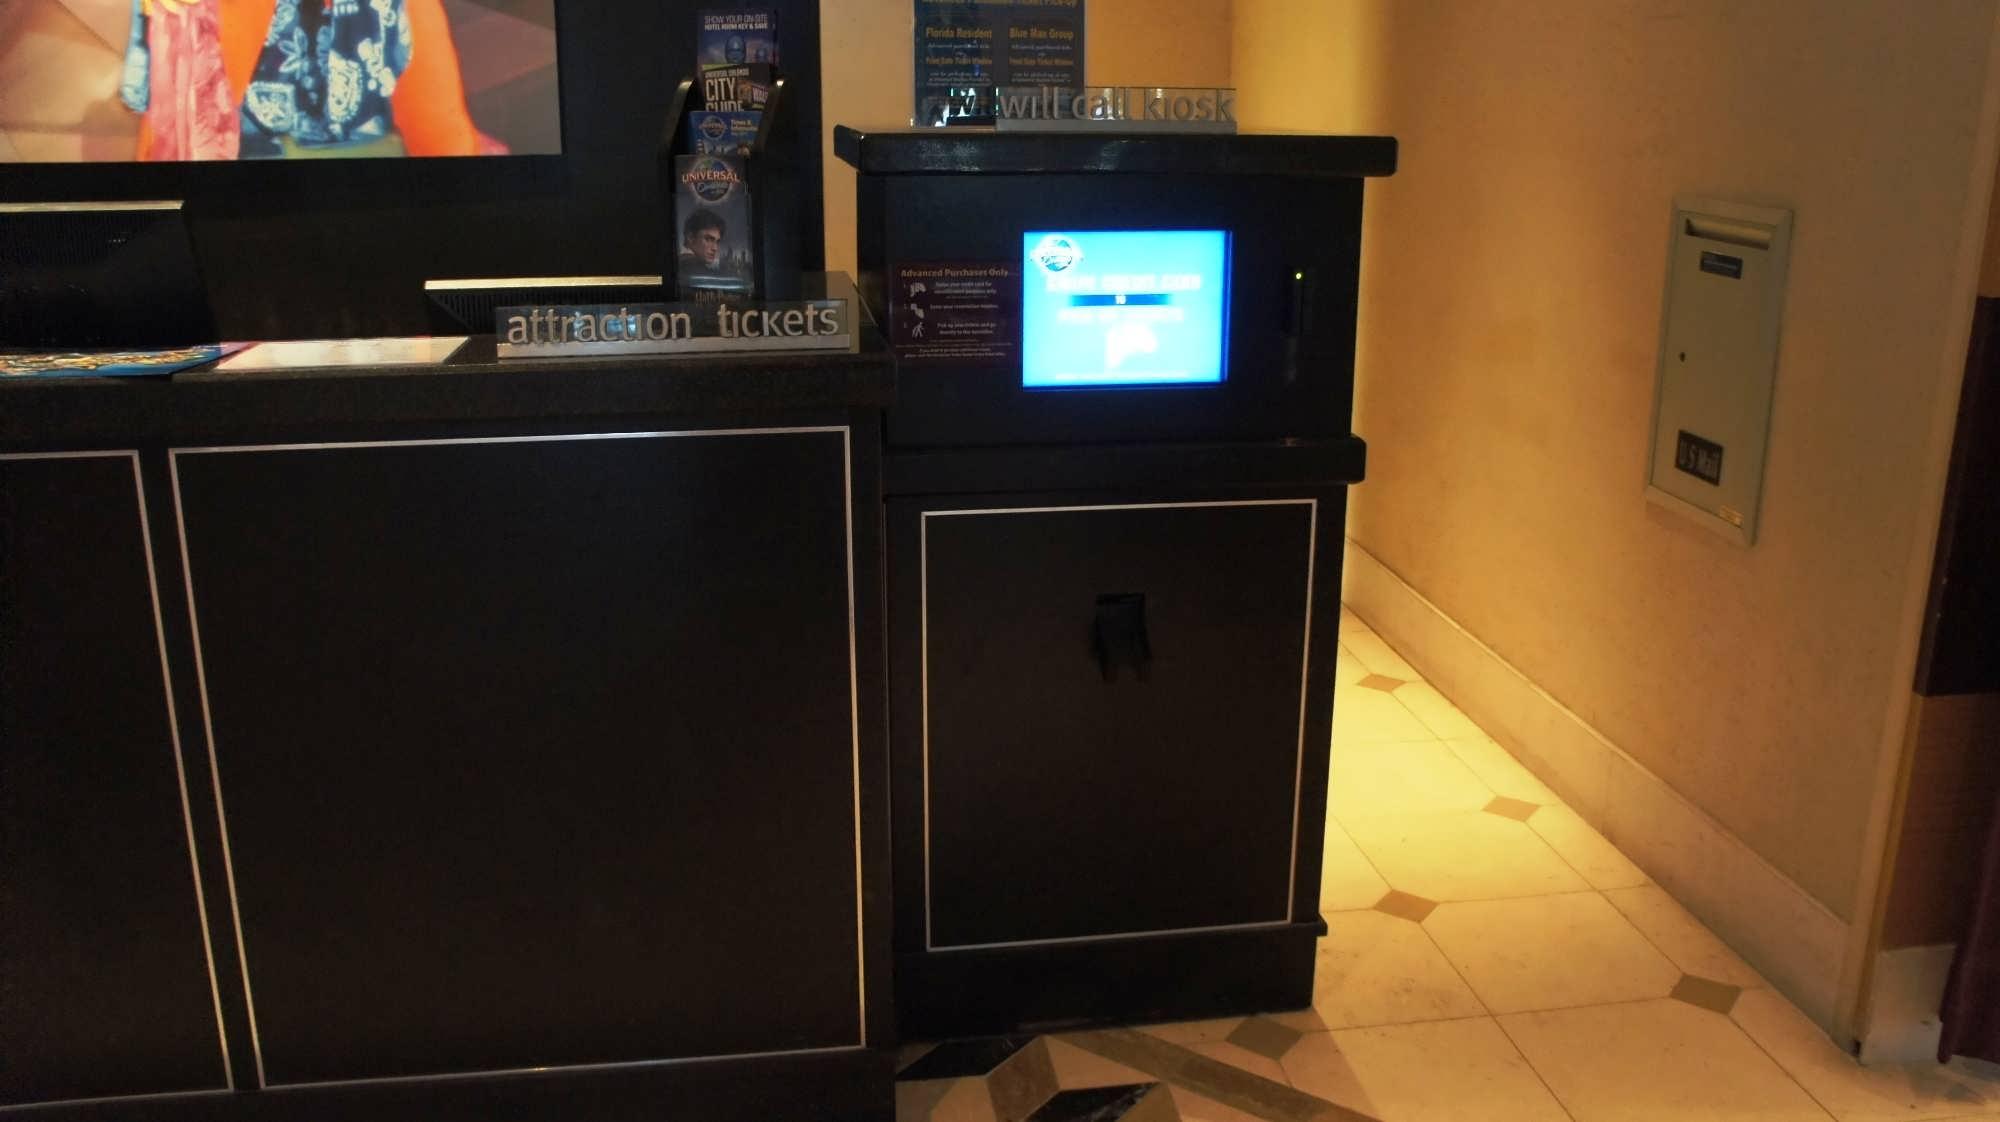 Electronic will call kiosk at Hard Rock Hotel Orlando